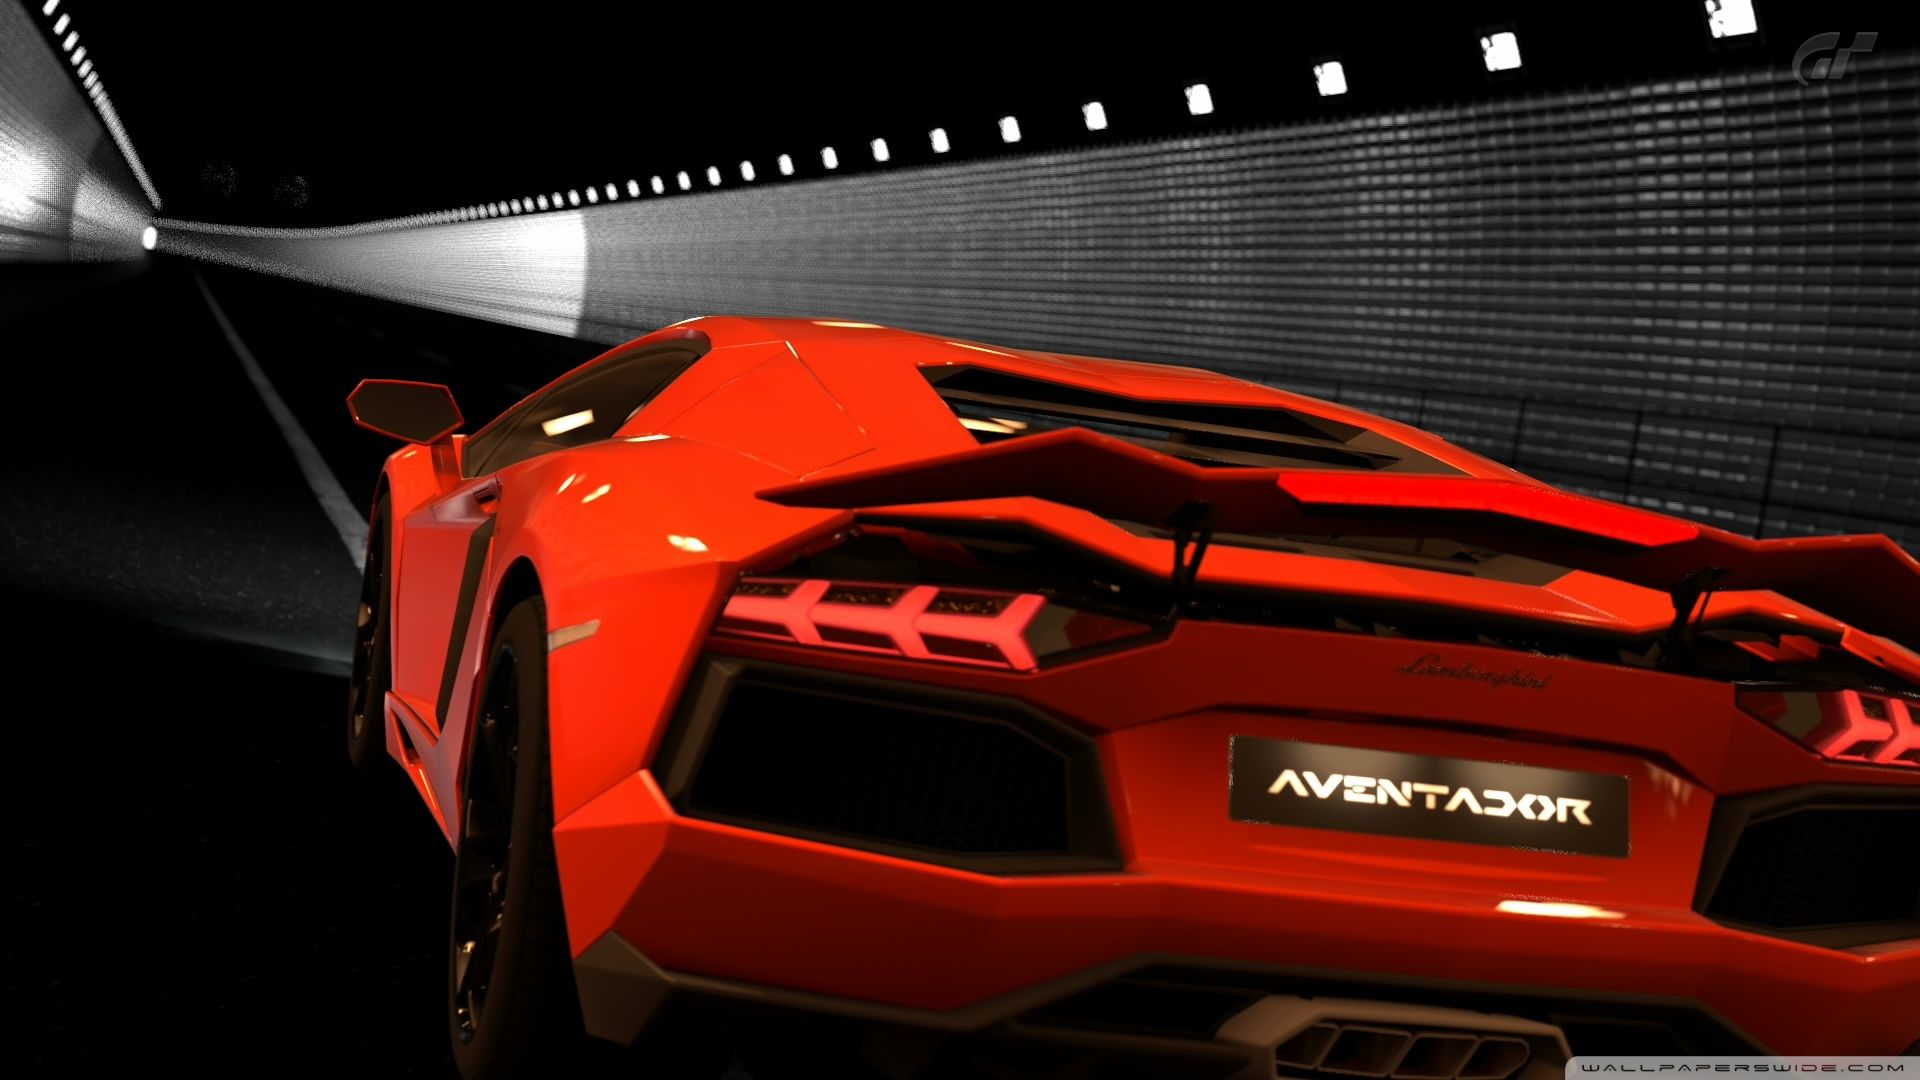 back to post hit to see more gallery car wallpaper lamborghini aventador - Lamborghini Aventador Wallpaper Hd Widescreen